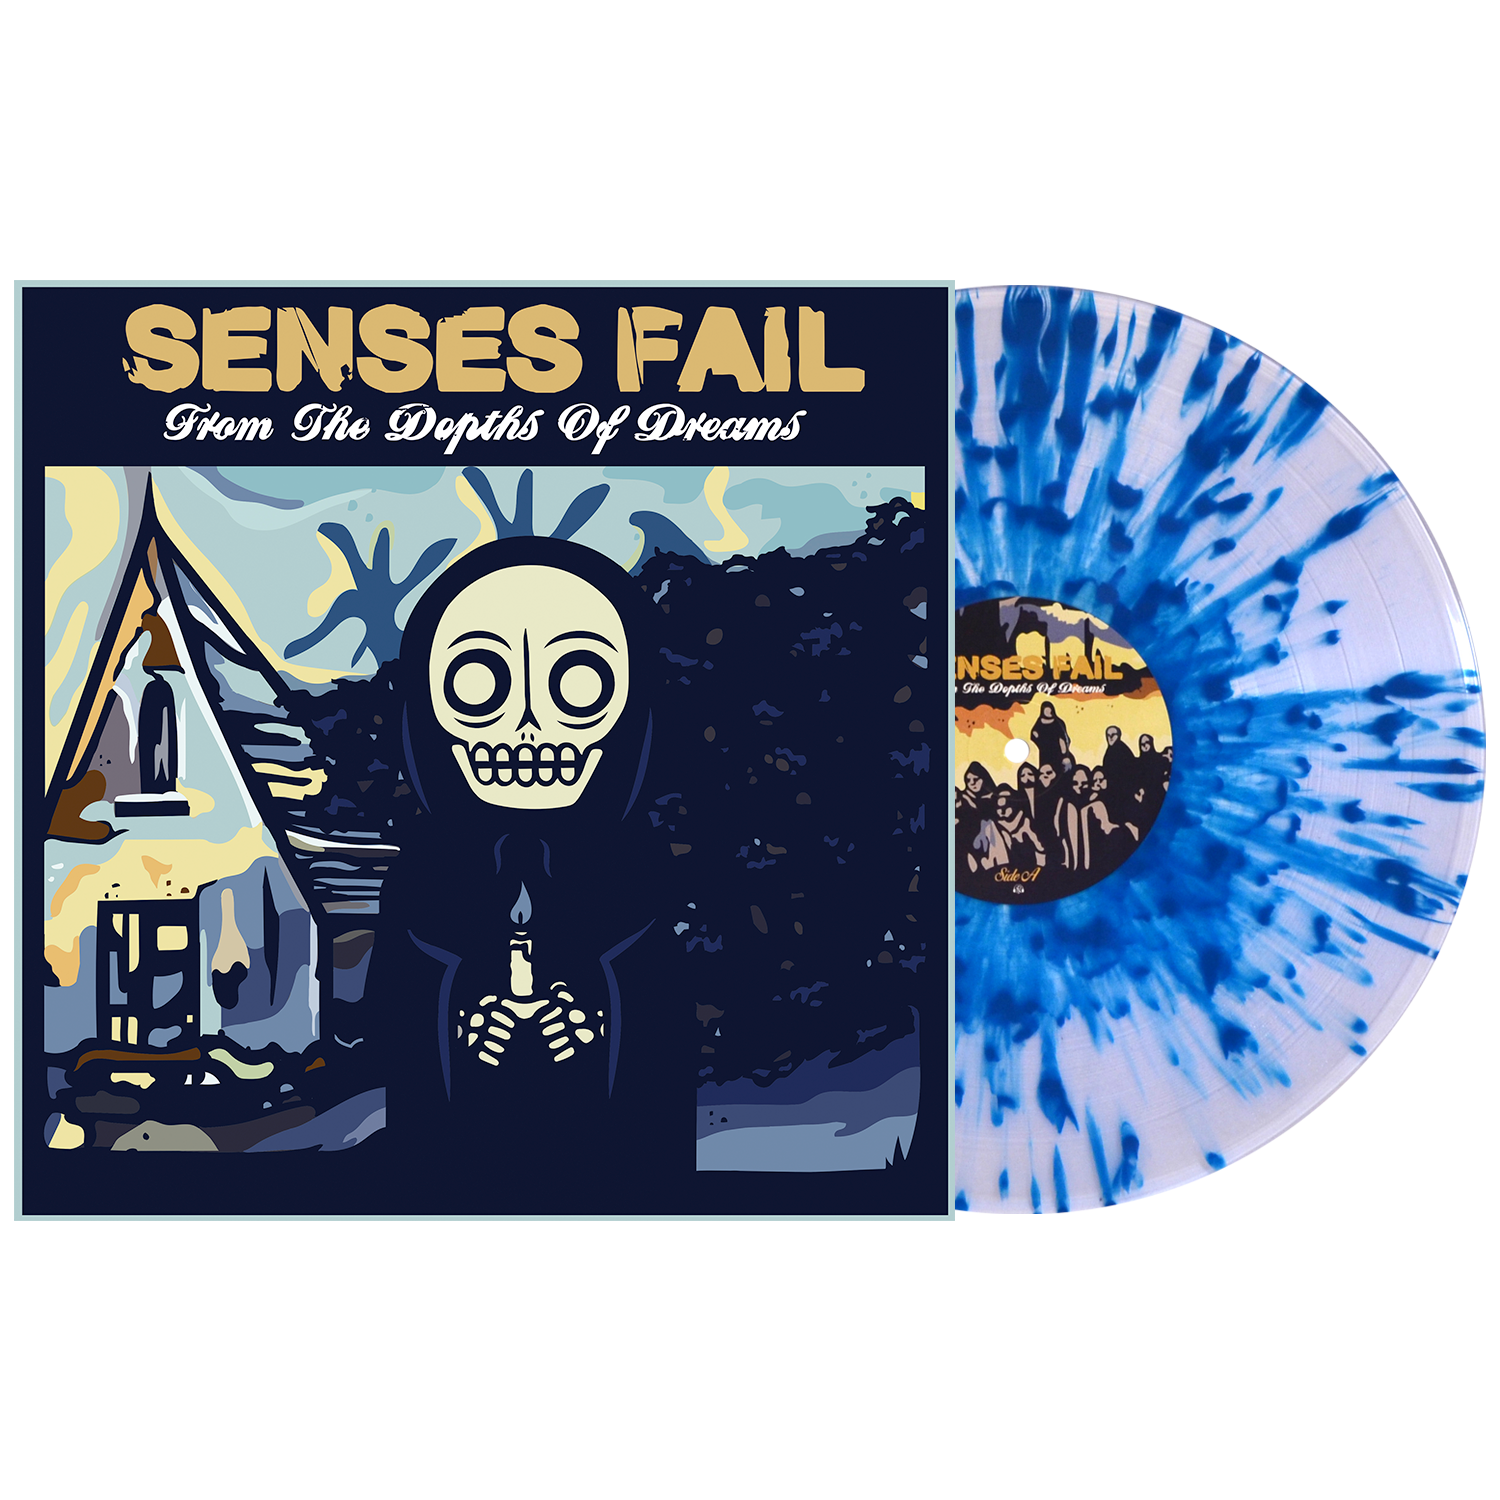 Senses Fail 'From The Depths of Dreams' Various 1 LP Clear w/ Heavy Aqua Blue Splatter